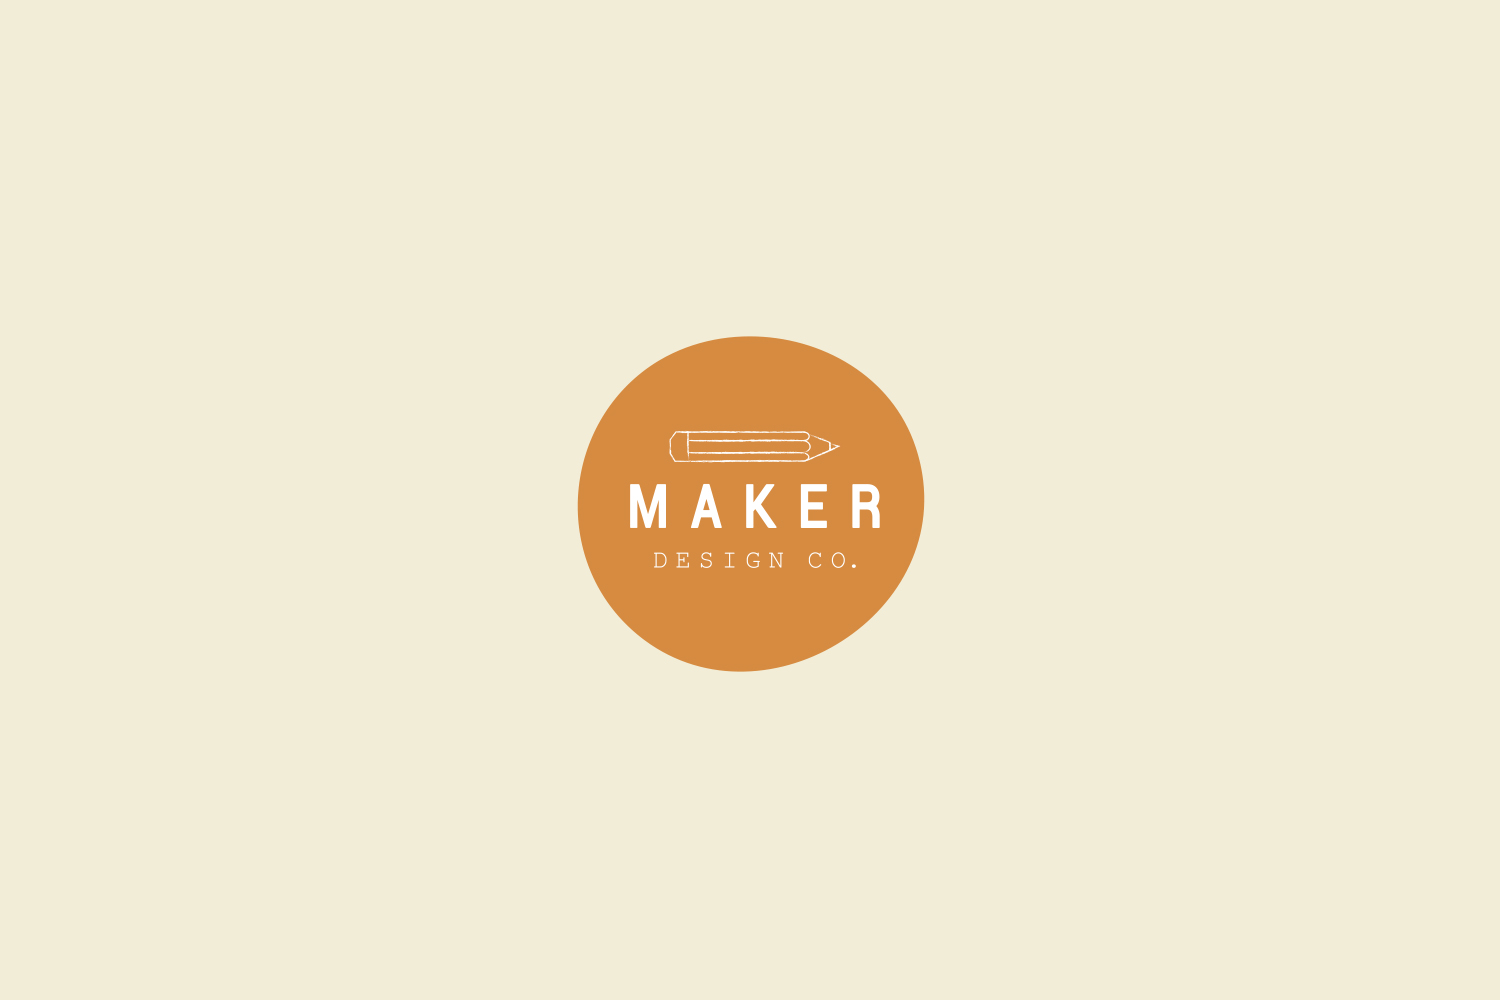 27.Becca_Allen_Maker_Design_Co_Logo.jpg